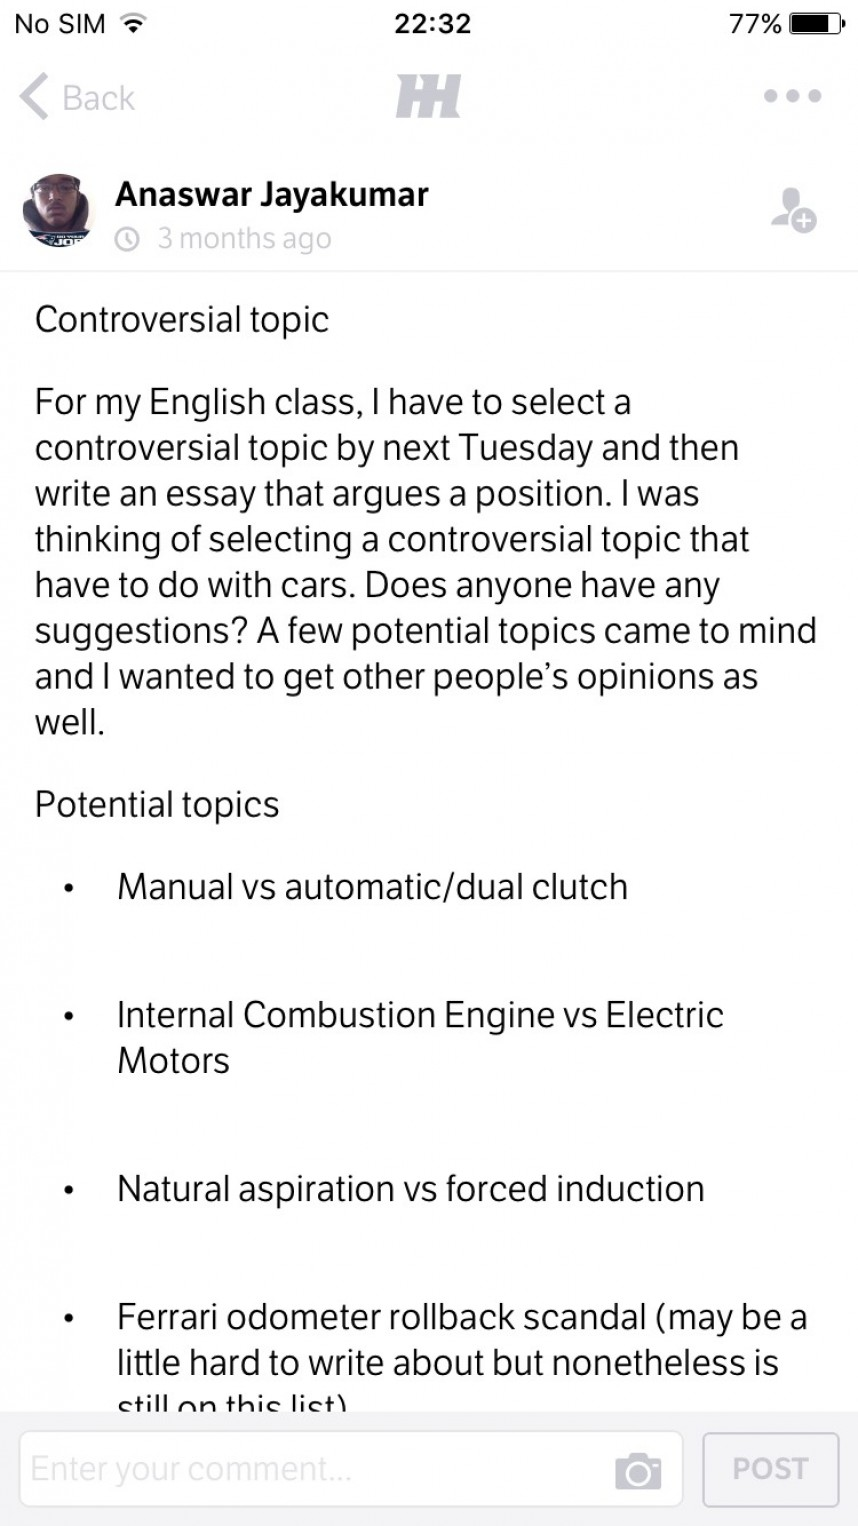 002 Research Paper Controversial Topics To Write On Topic Essay Example Outline Awesome A